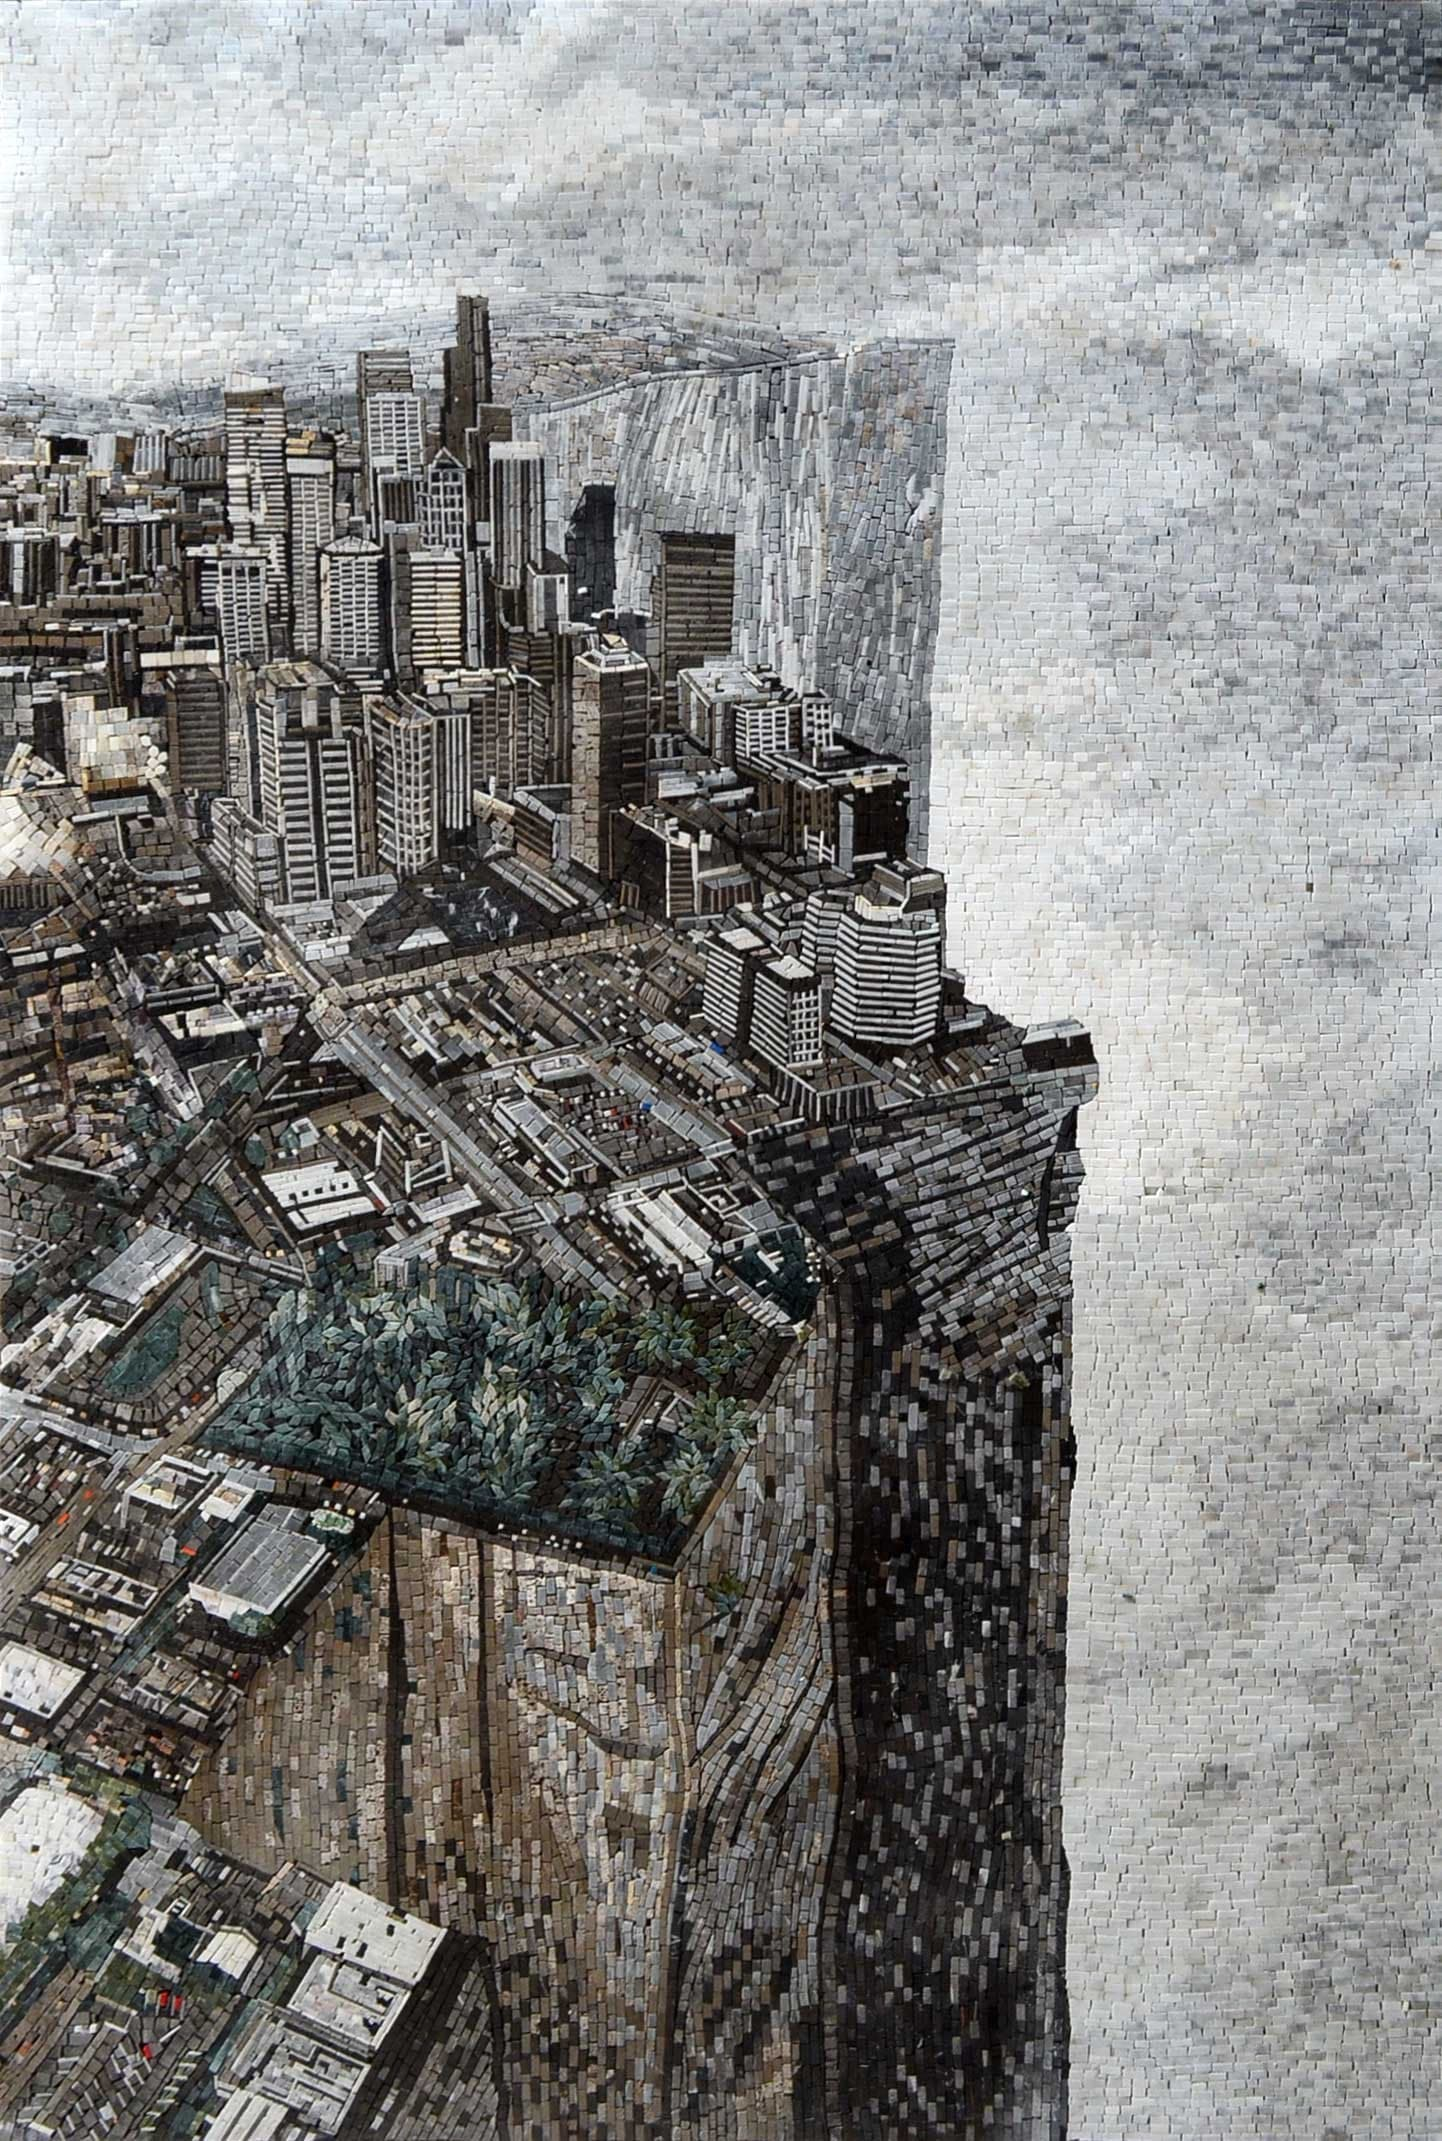 Edge of the World on a Marble Mosaic Mural